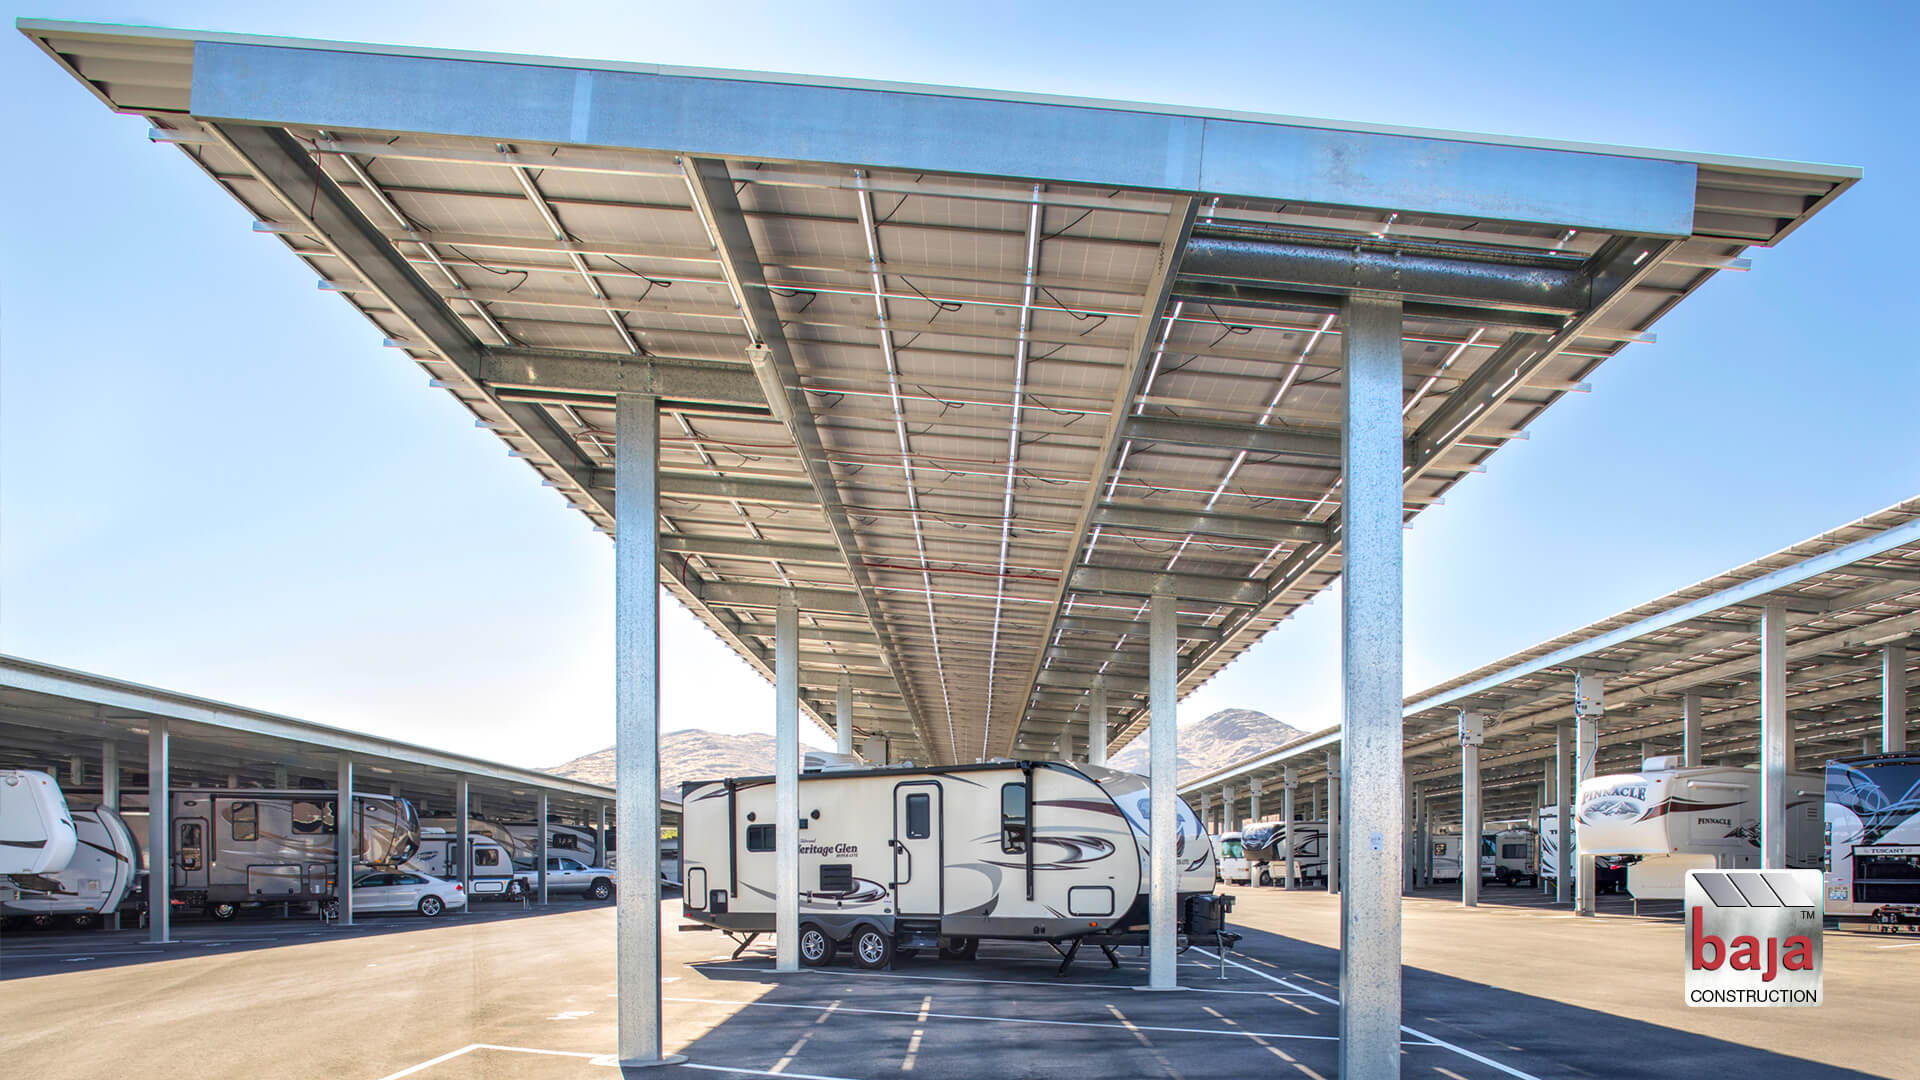 Love's Storage Solutions, Las Vegas, NV | Utilizes Solar & Standard Covered RV Canopies | 60 Solar Canopies | 362 Covered Spaces